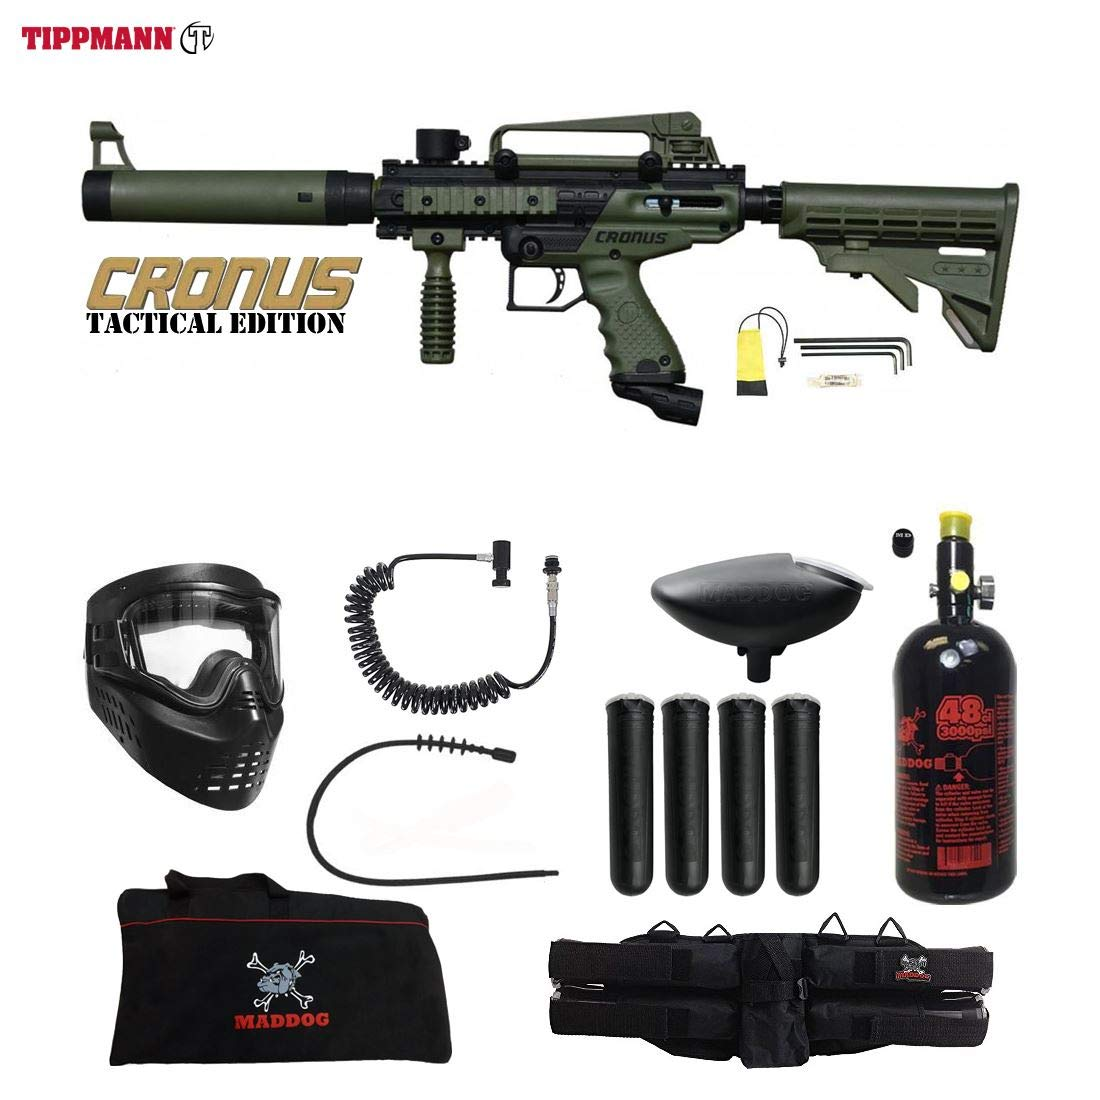 Maddog Tippmann Cronus Tactical Specialist HPA Paintball Gun Package - Black/Olive by Maddog